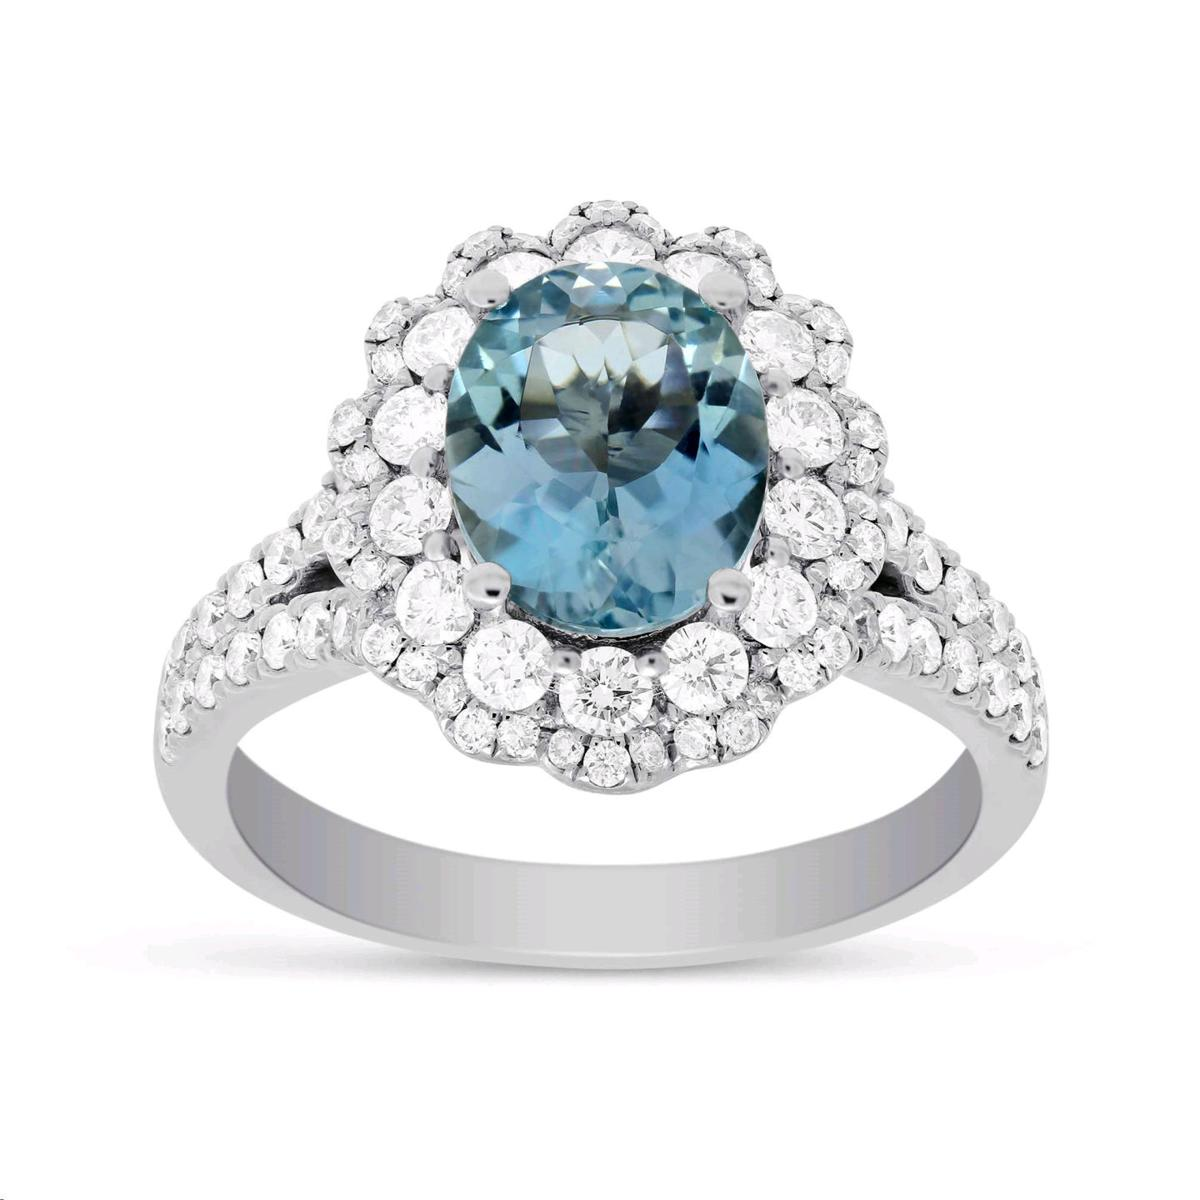 7c2172bf4 WeddingEssentials_GetTheRoyalLook_Big Aqua.jpg. 18K white gold oval  aquamarine and diamond halo ...